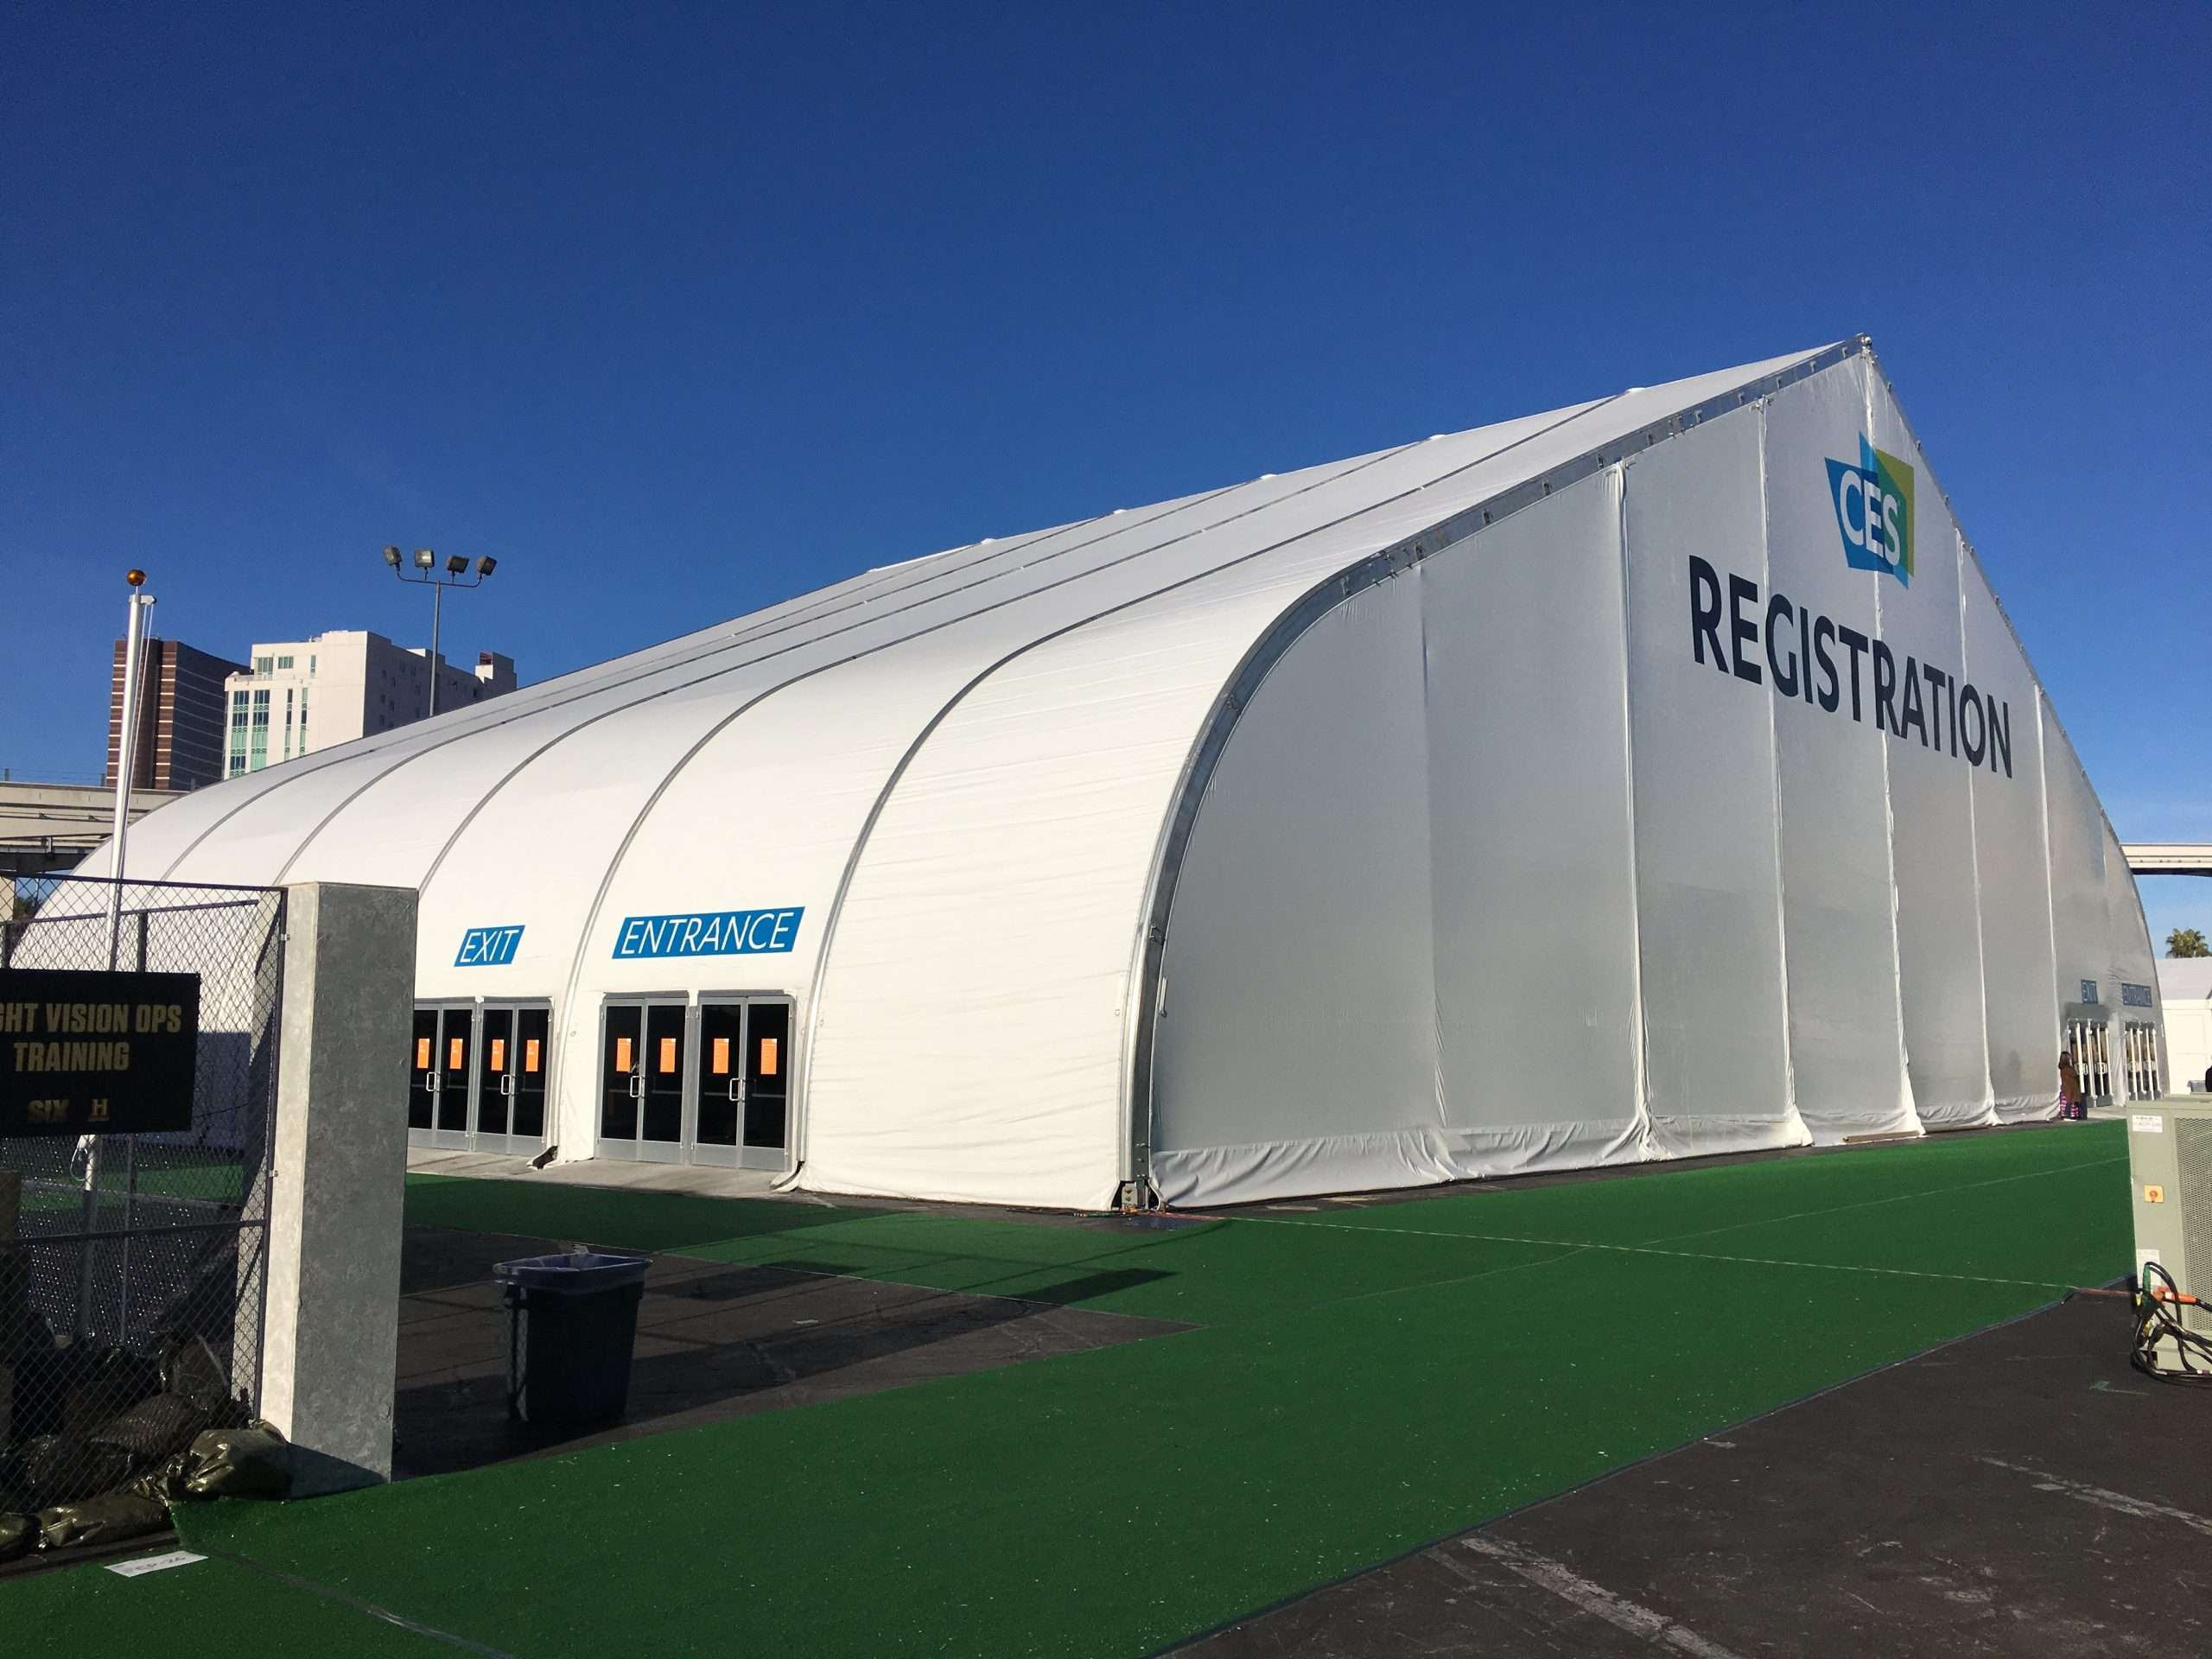 CES Registration area including public entrance doors on Allsite TFS temporary structure